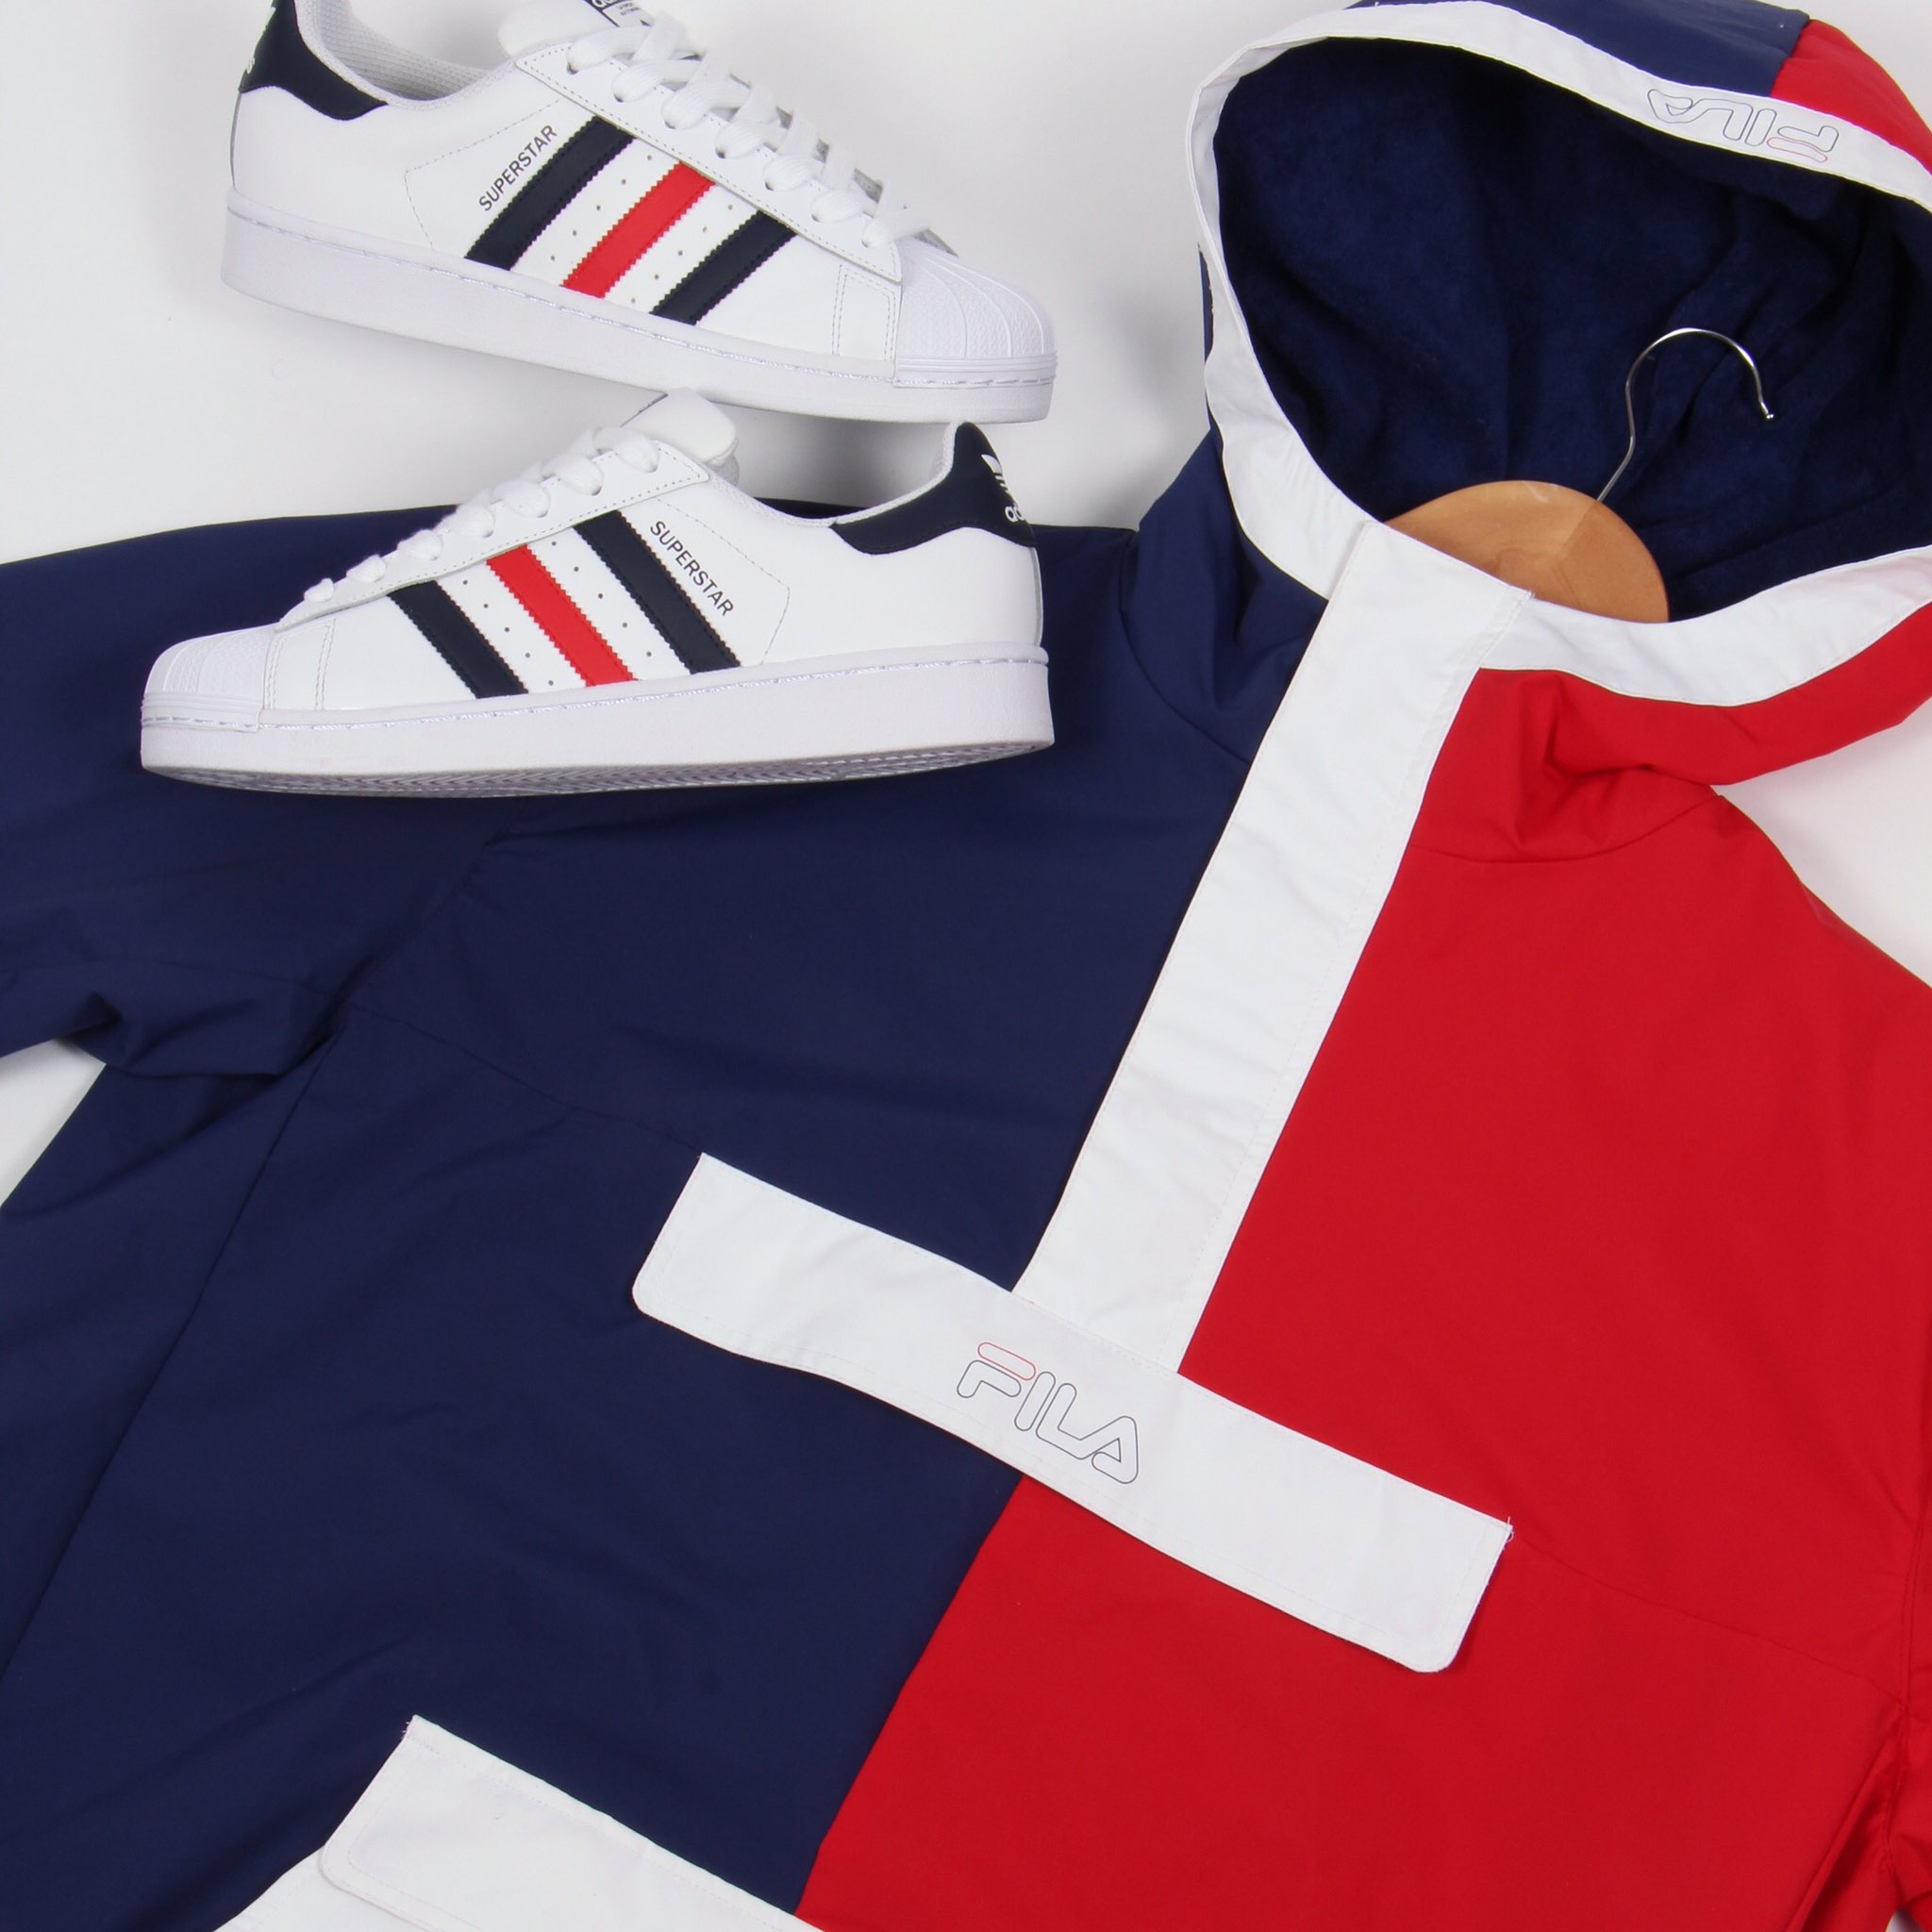 finest selection 8b8e7 40b94 ... low price adidas originals shoes clothes australia 80s casual classics  on twitter . 1855b 561fb